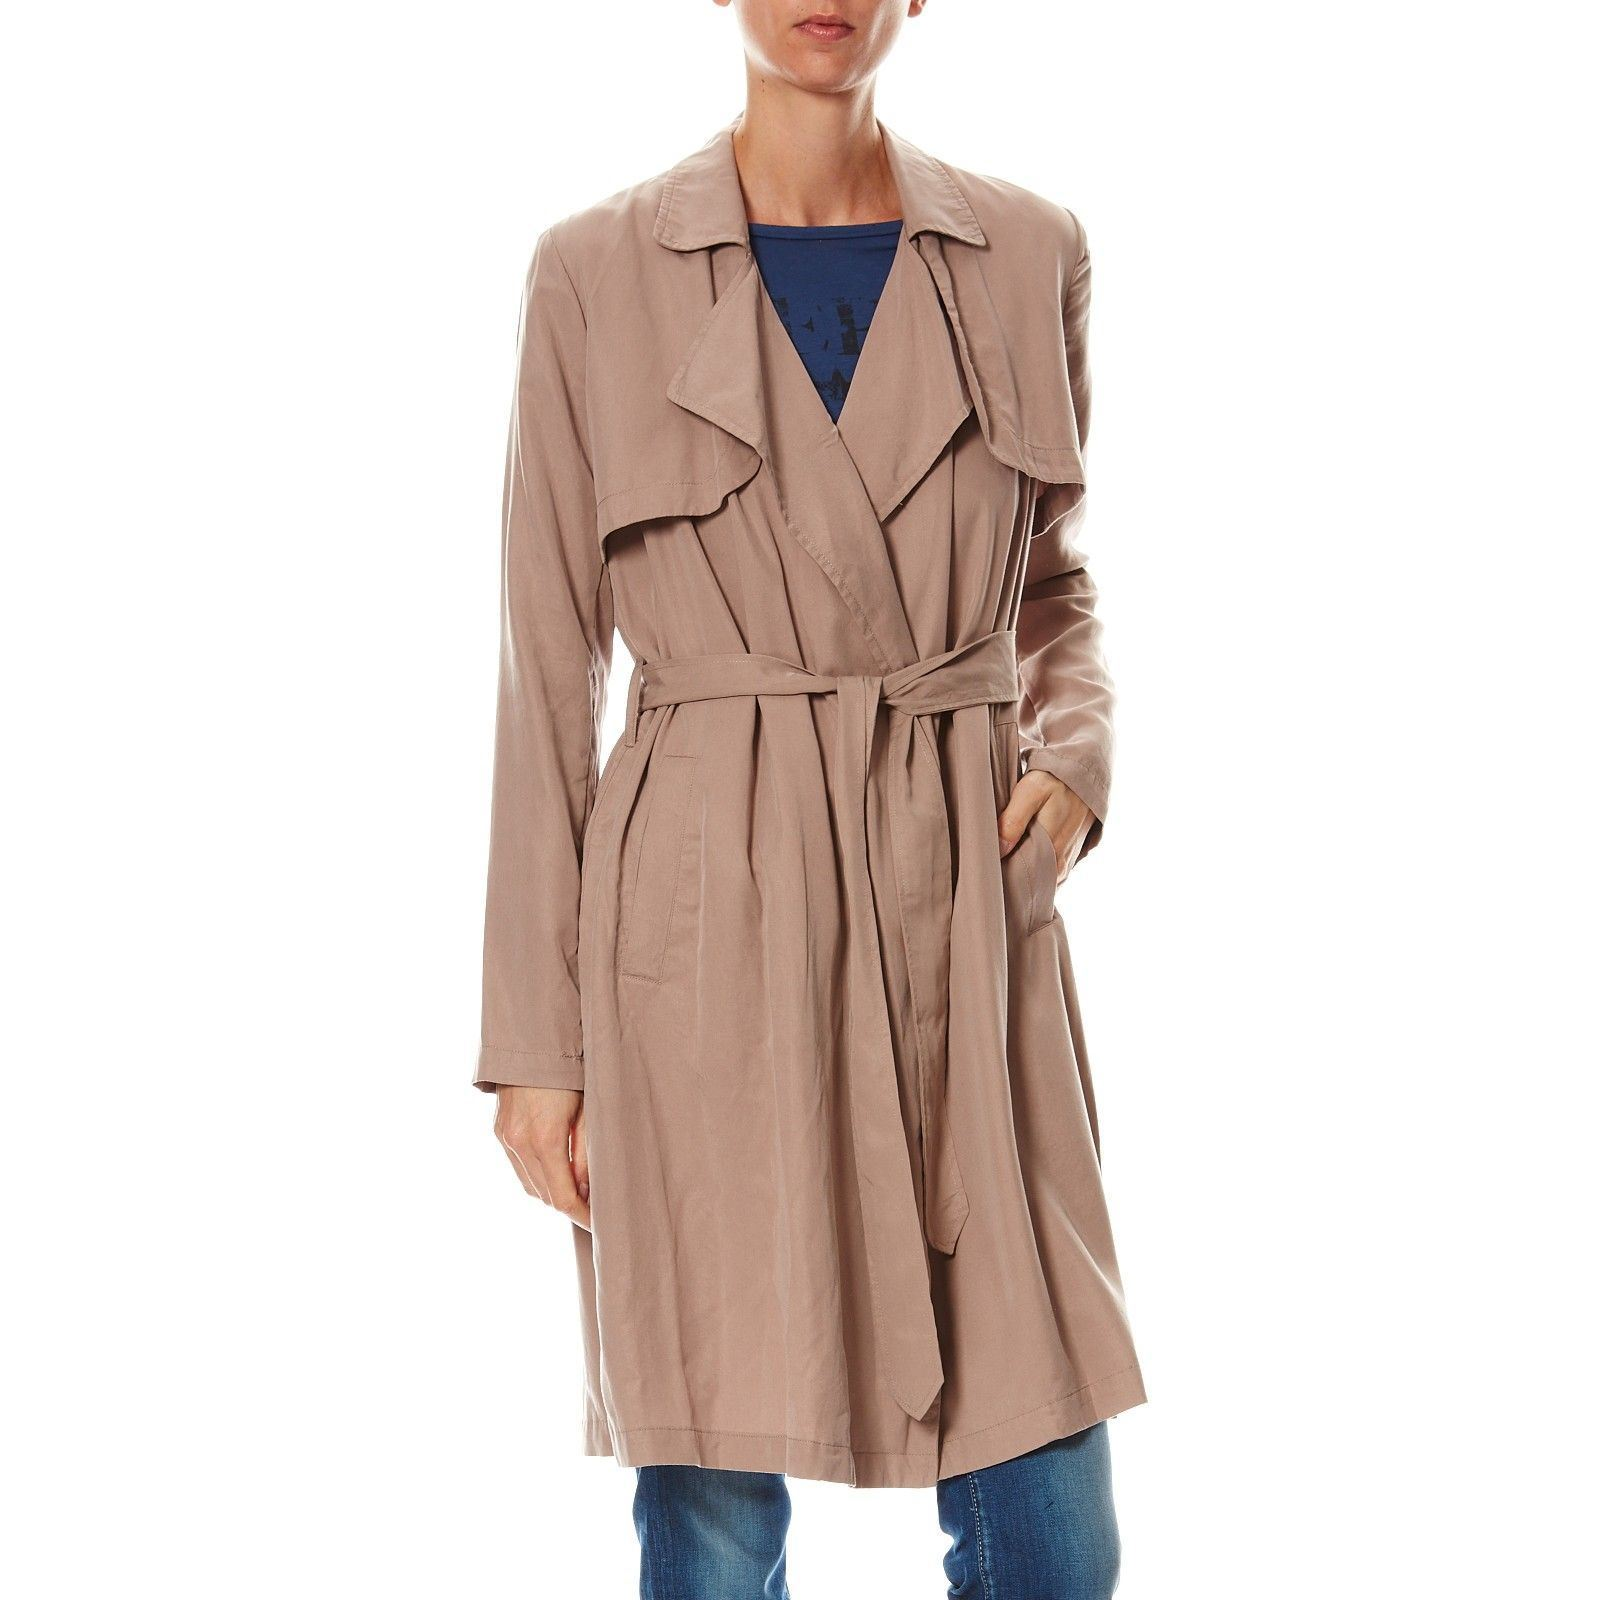 Pepe Jeans London Charlena - Trench - beige   BrandAlley bb74ede0bf87